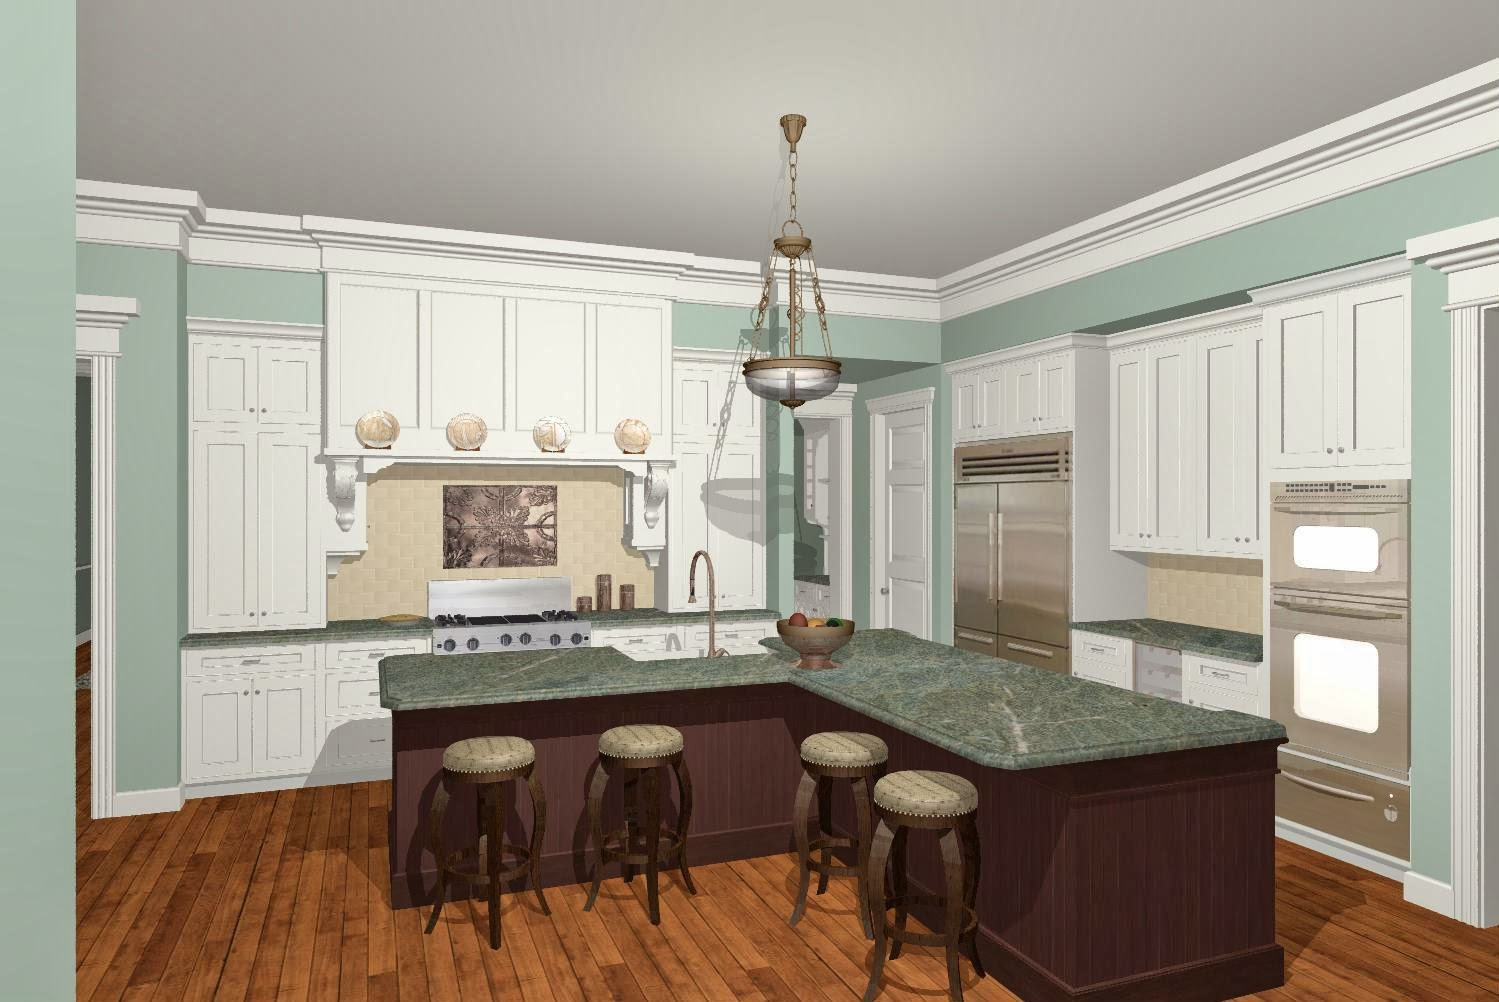 L Shaped Island Design A Kitchen Island: L Shaped Kitchen With Island Ideas